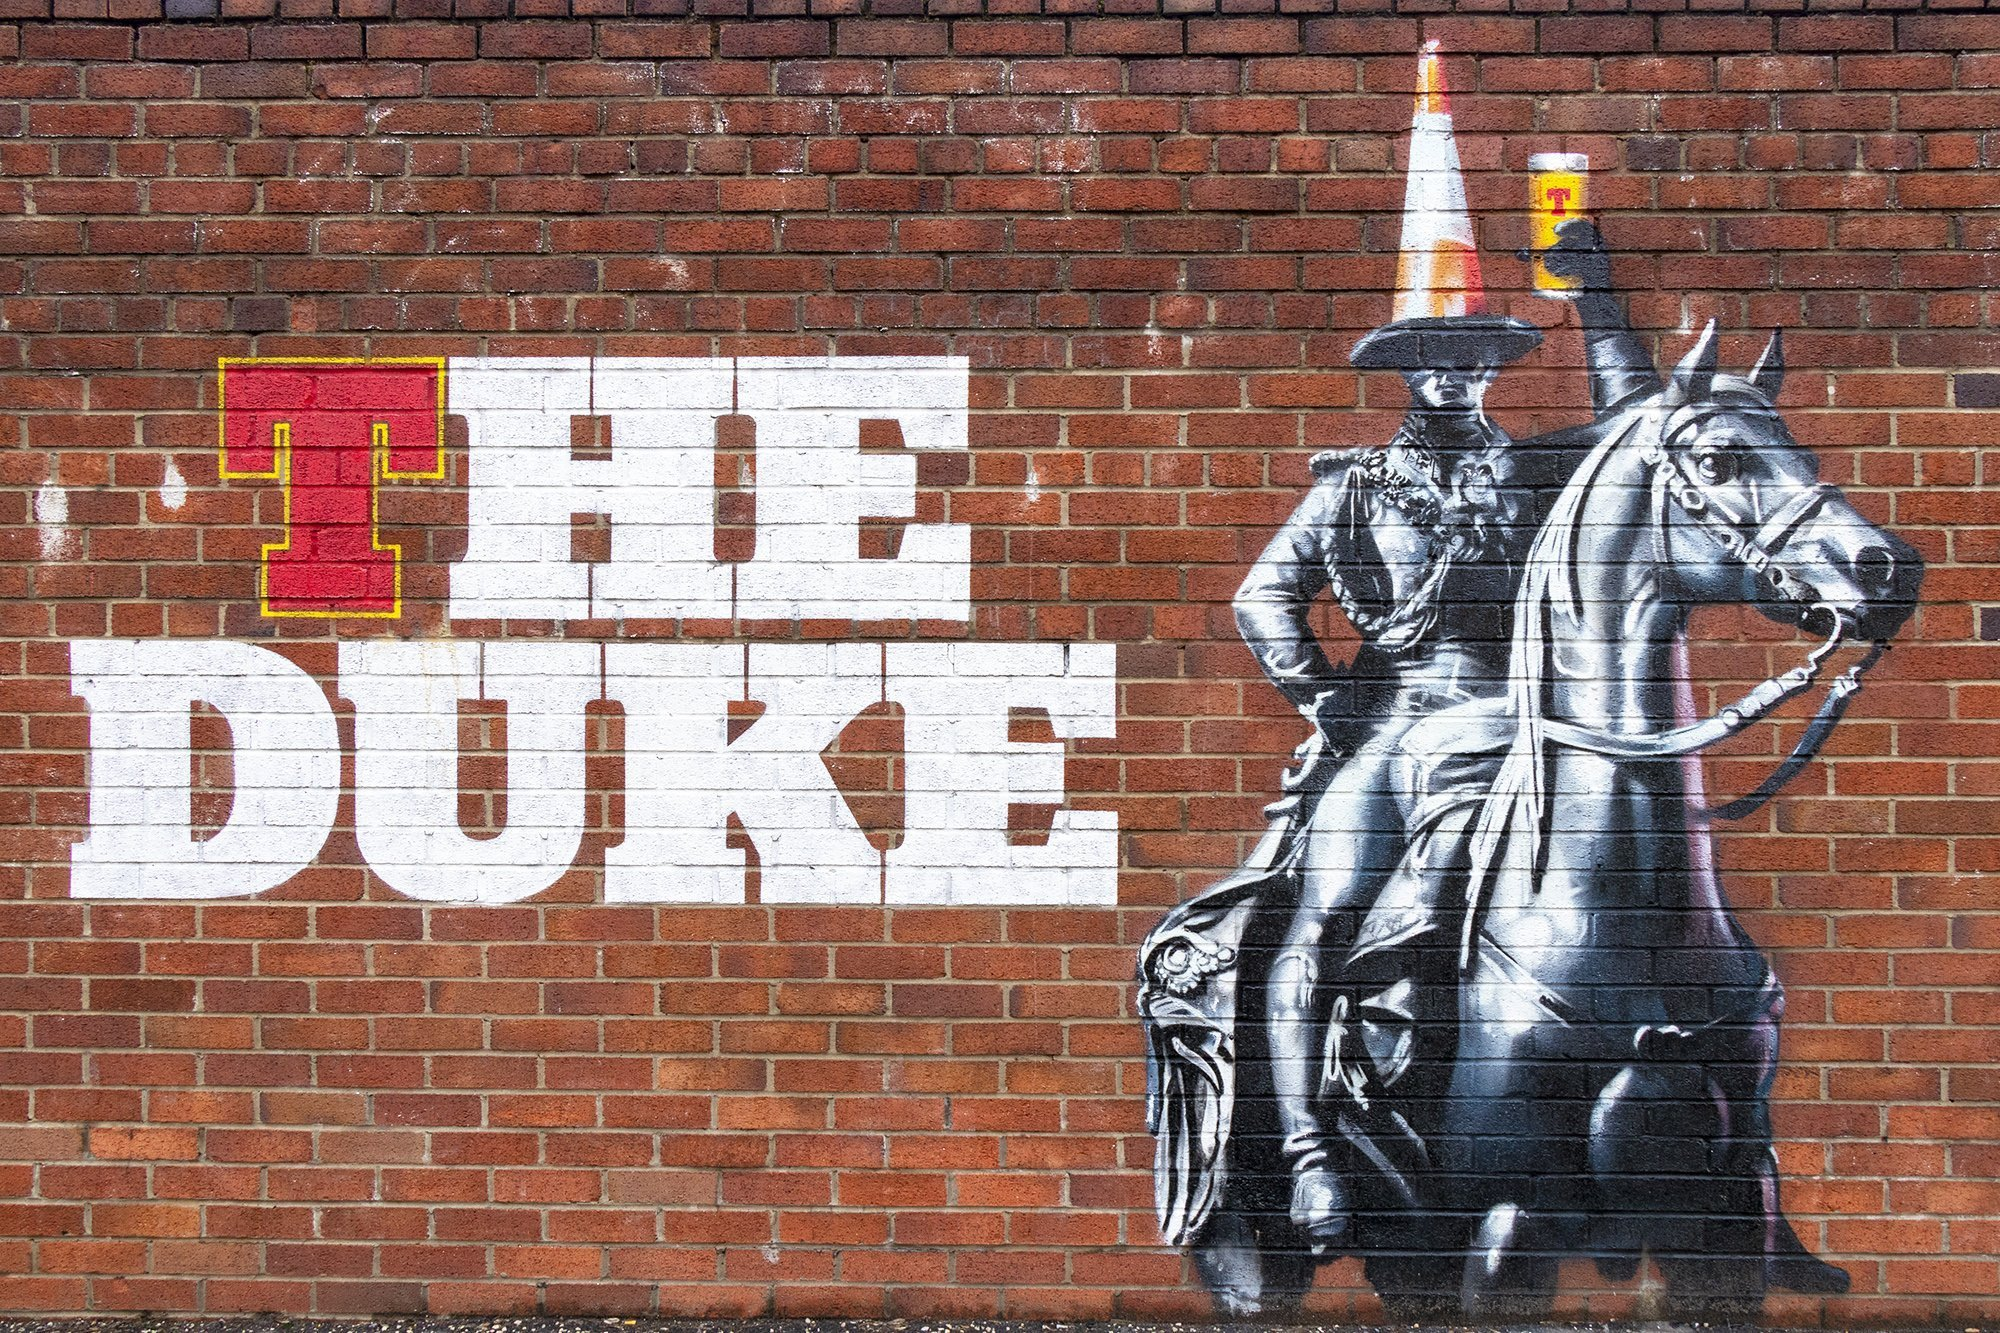 The Duke graffiti mural - Glasgow mural trail